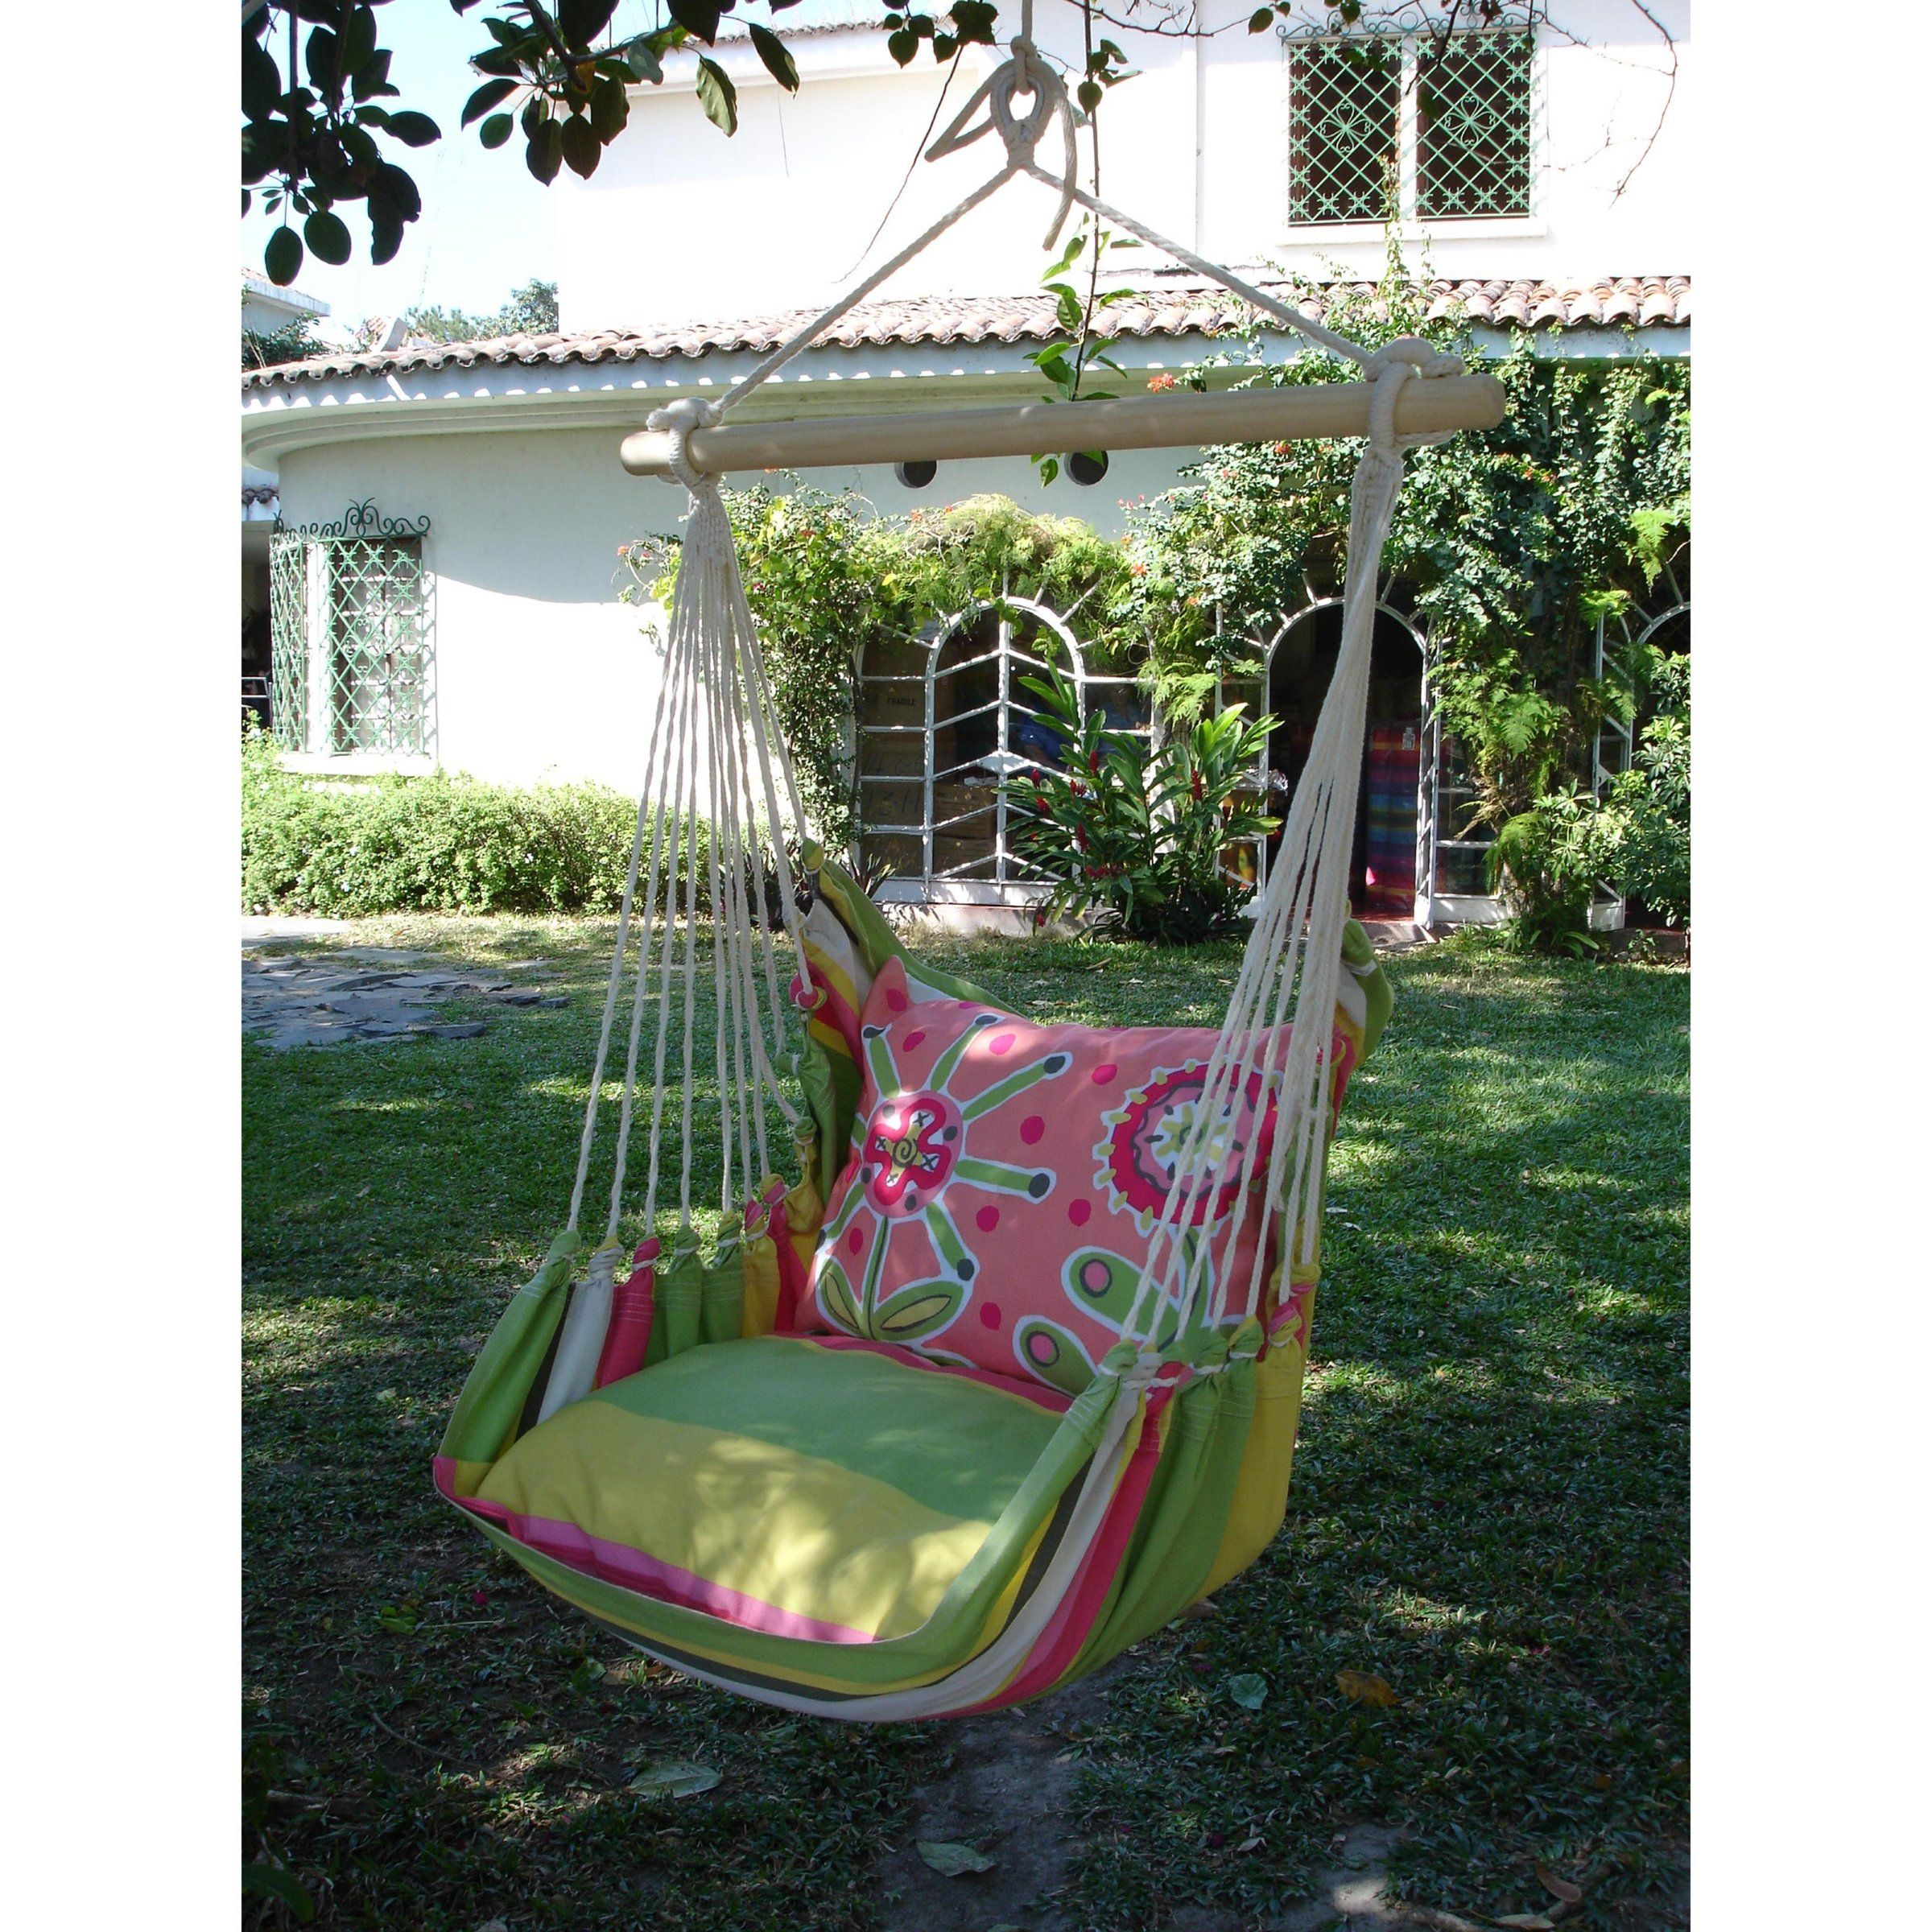 egg bedroom swingasan swing chair outstanding ikea teardrop pier for and papasan indoor one basket table cushions hanging stand use outdoor hammock in swinging